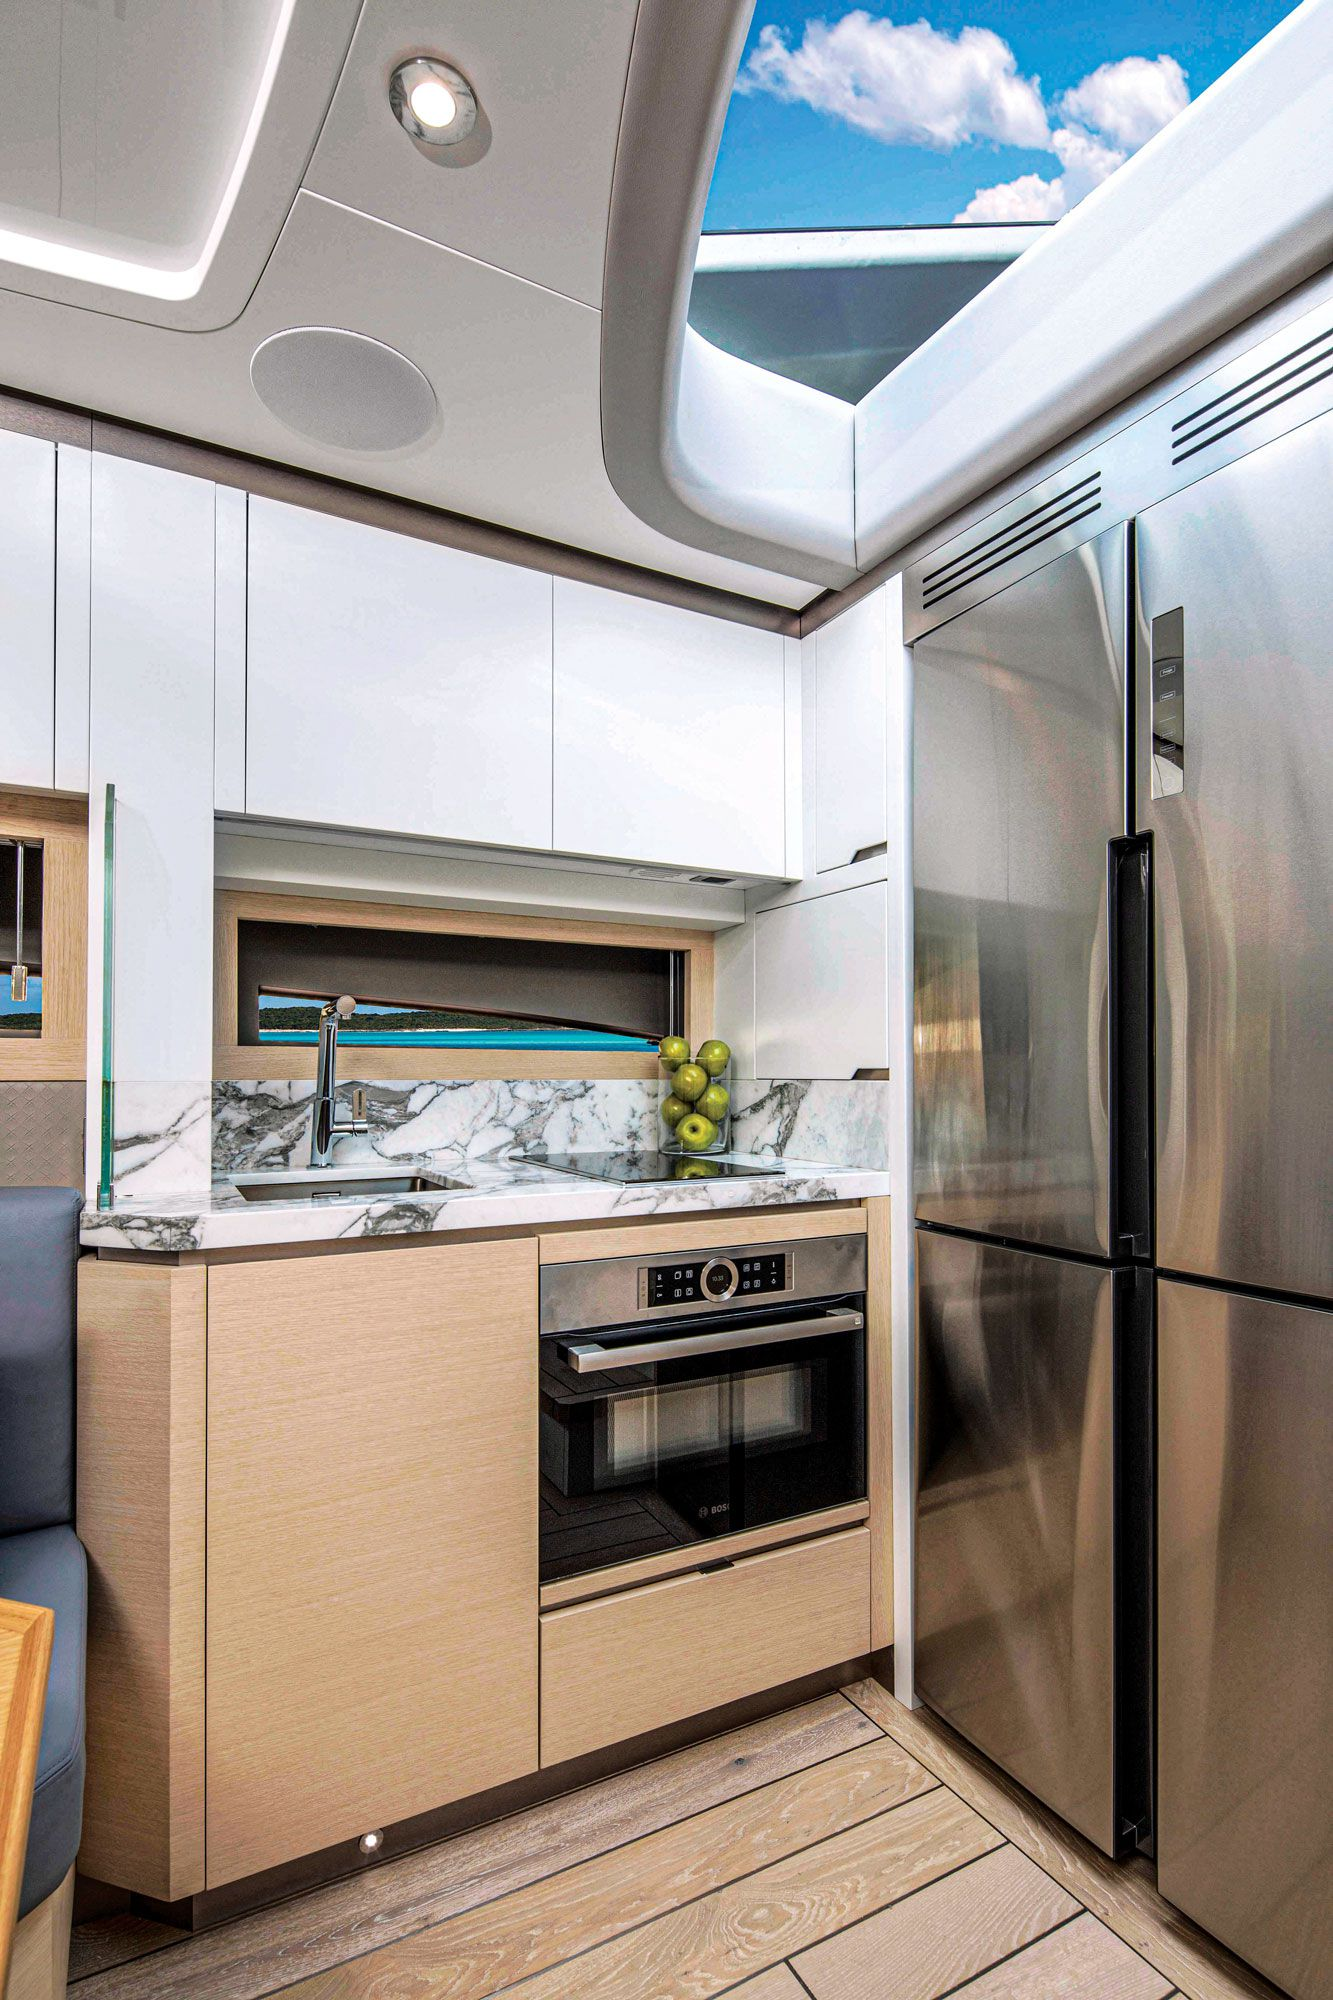 A windshield above the galley keeps the space bright and creates an atrium-type feeling.